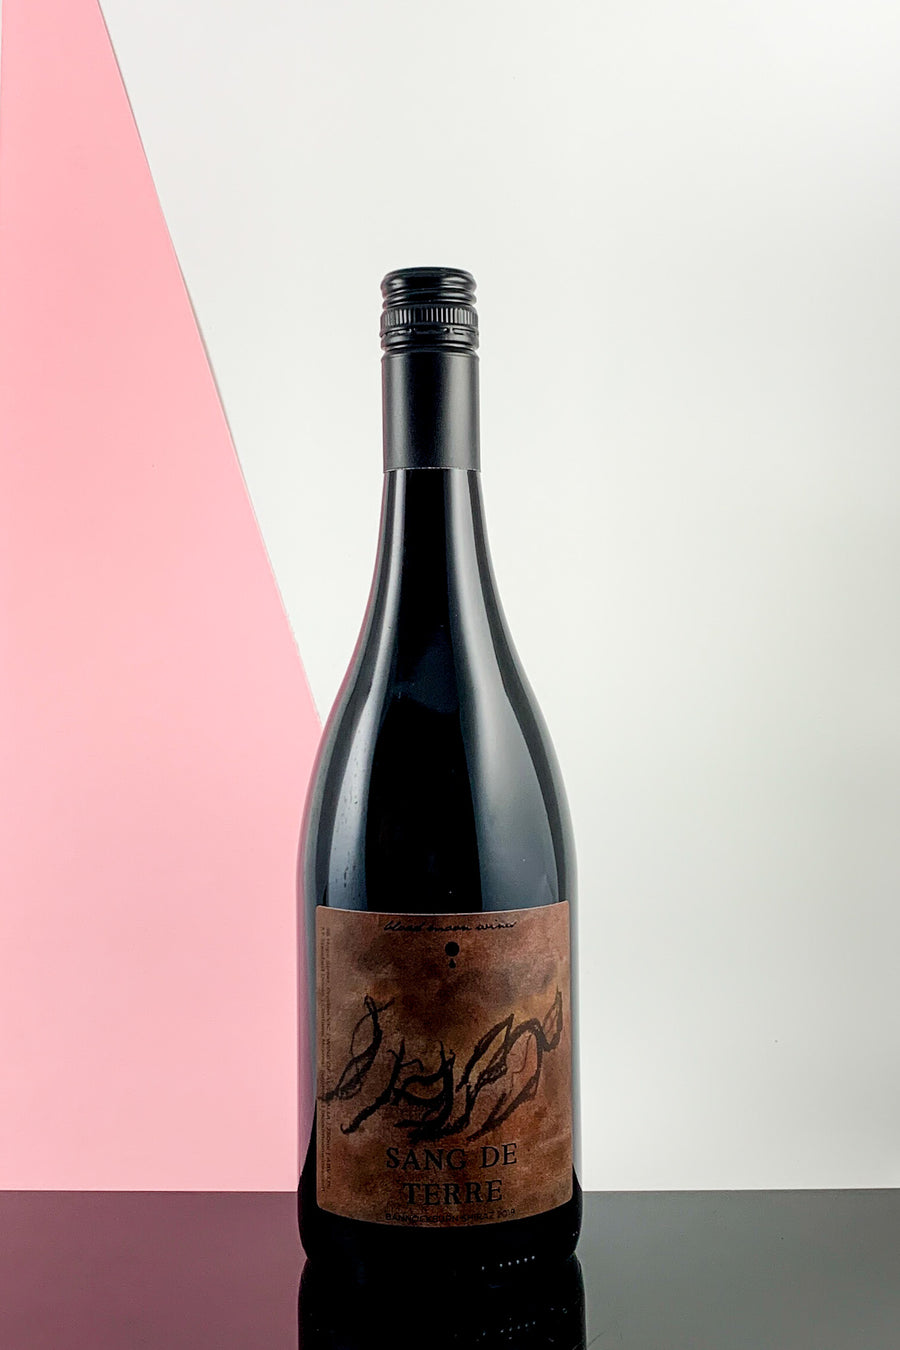 Blood Moon Sang de Terre Shiraz 2019